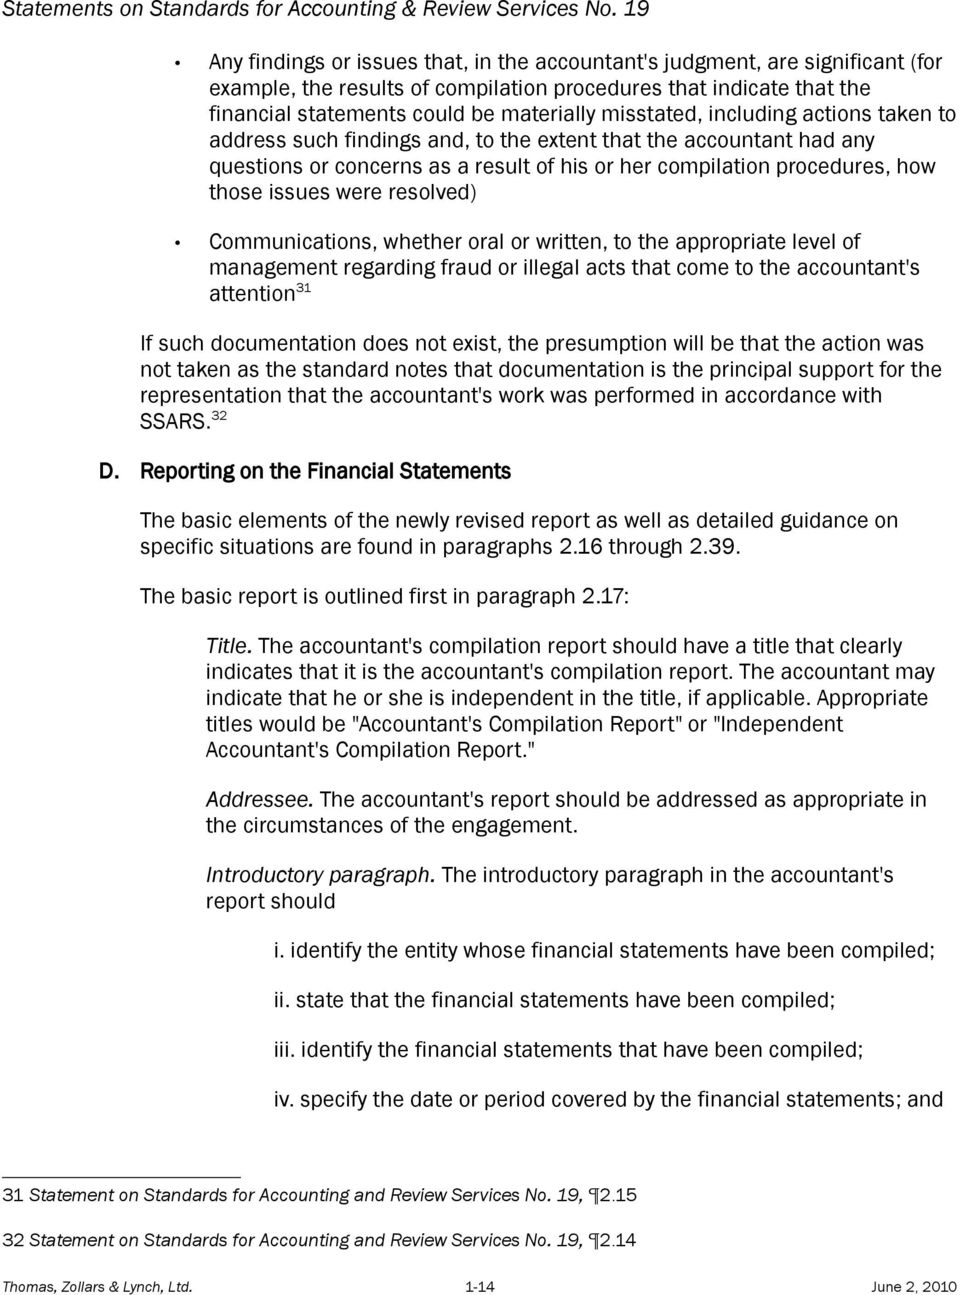 were resolved) Communications, whether oral or written, to the appropriate level of management regarding fraud or illegal acts that come to the accountant's attention 31 If such documentation does